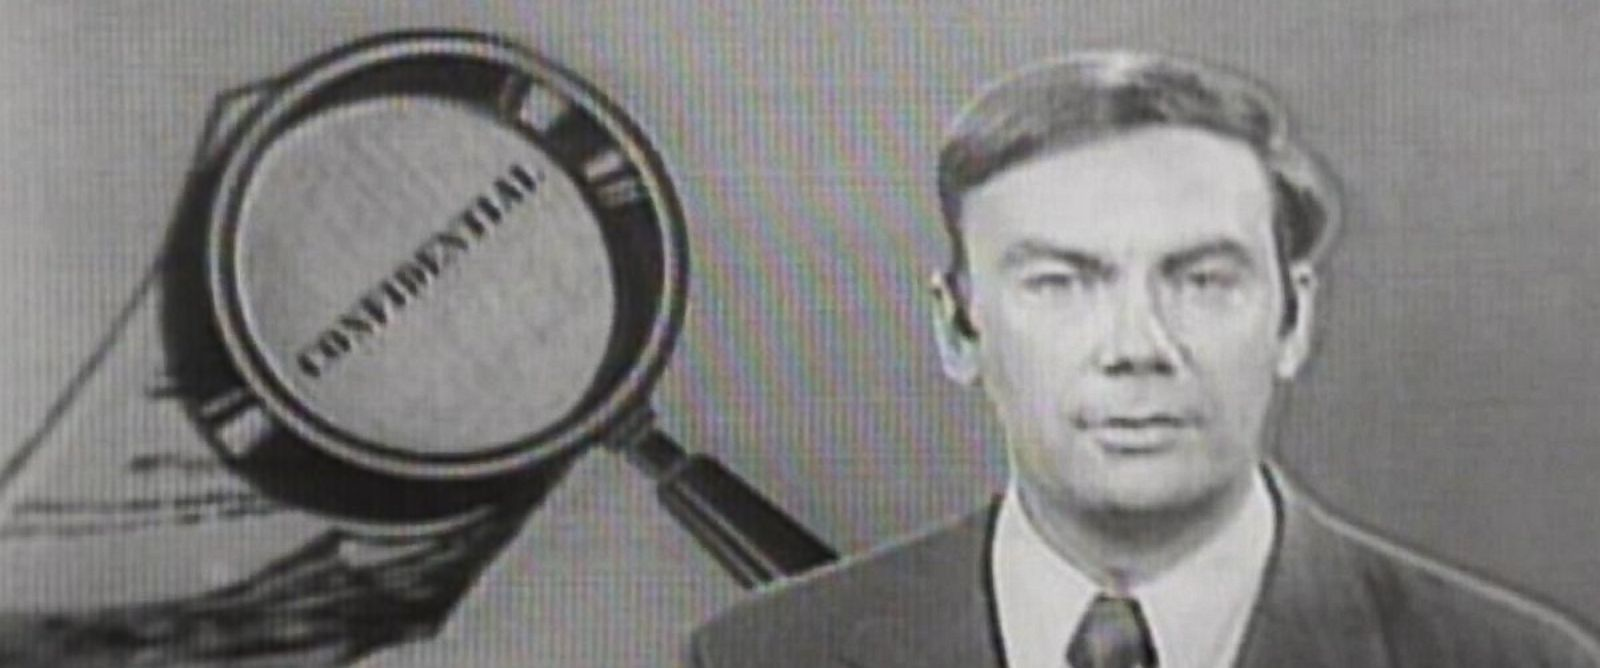 PHOTO: Sam Donaldson reports on the break-in at the Democratic National Committee headquarters in Washington, D.C. on ABCs Weekend News, June 17, 1972.